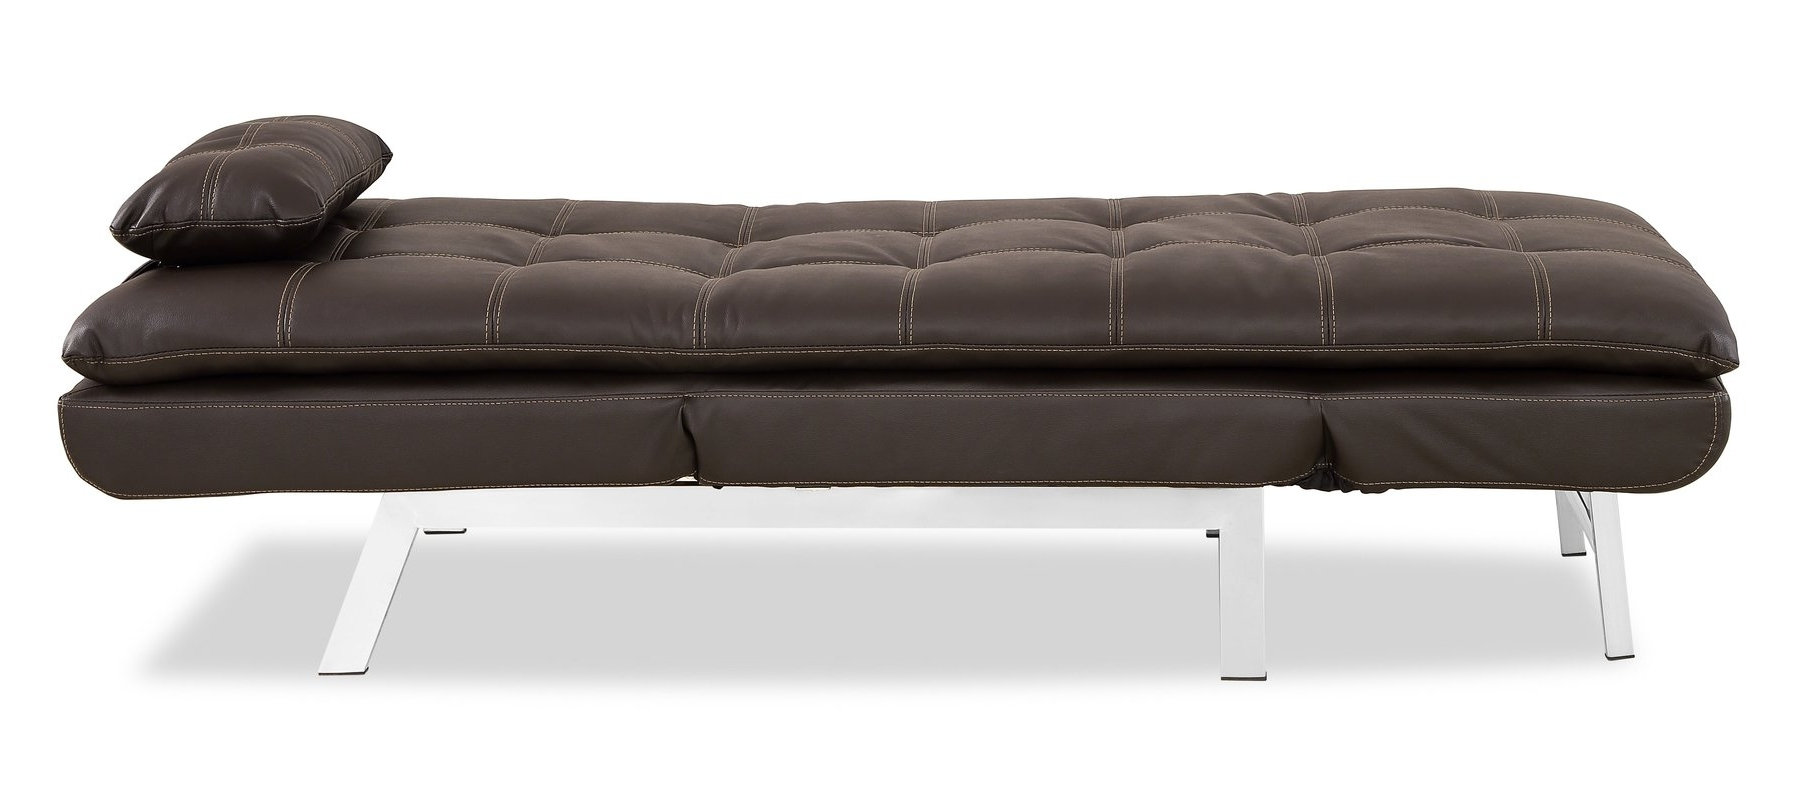 Serta Futons Vienna Convertible Chaise Lounge & Reviews (View 6 of 15)